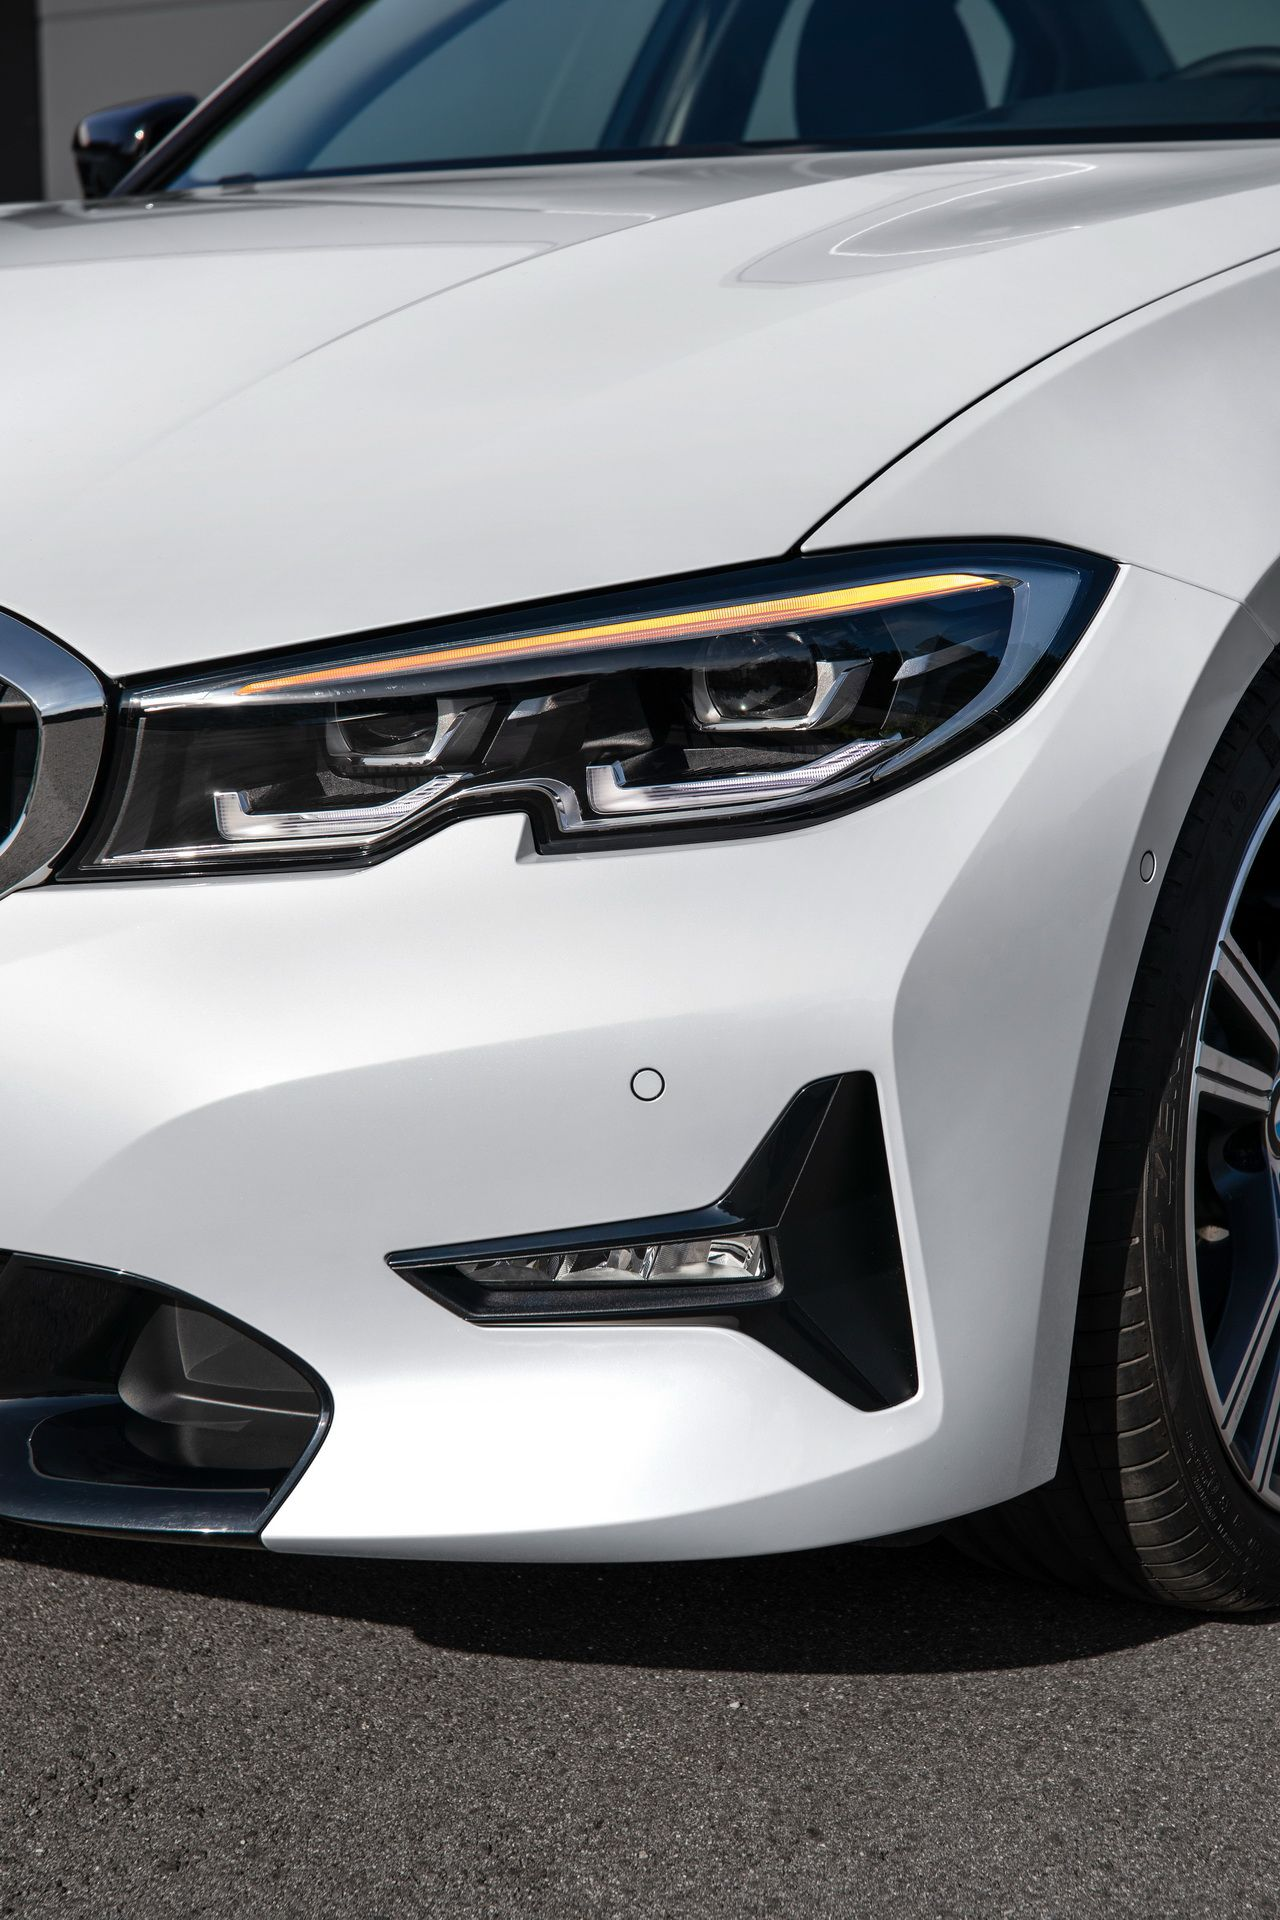 New 2019 Bmw 3 Series Looks To Build On The F30 S Success 244 Images Updated Gallery Carscoops Bmw Bmw 3 Series Bmw Cars